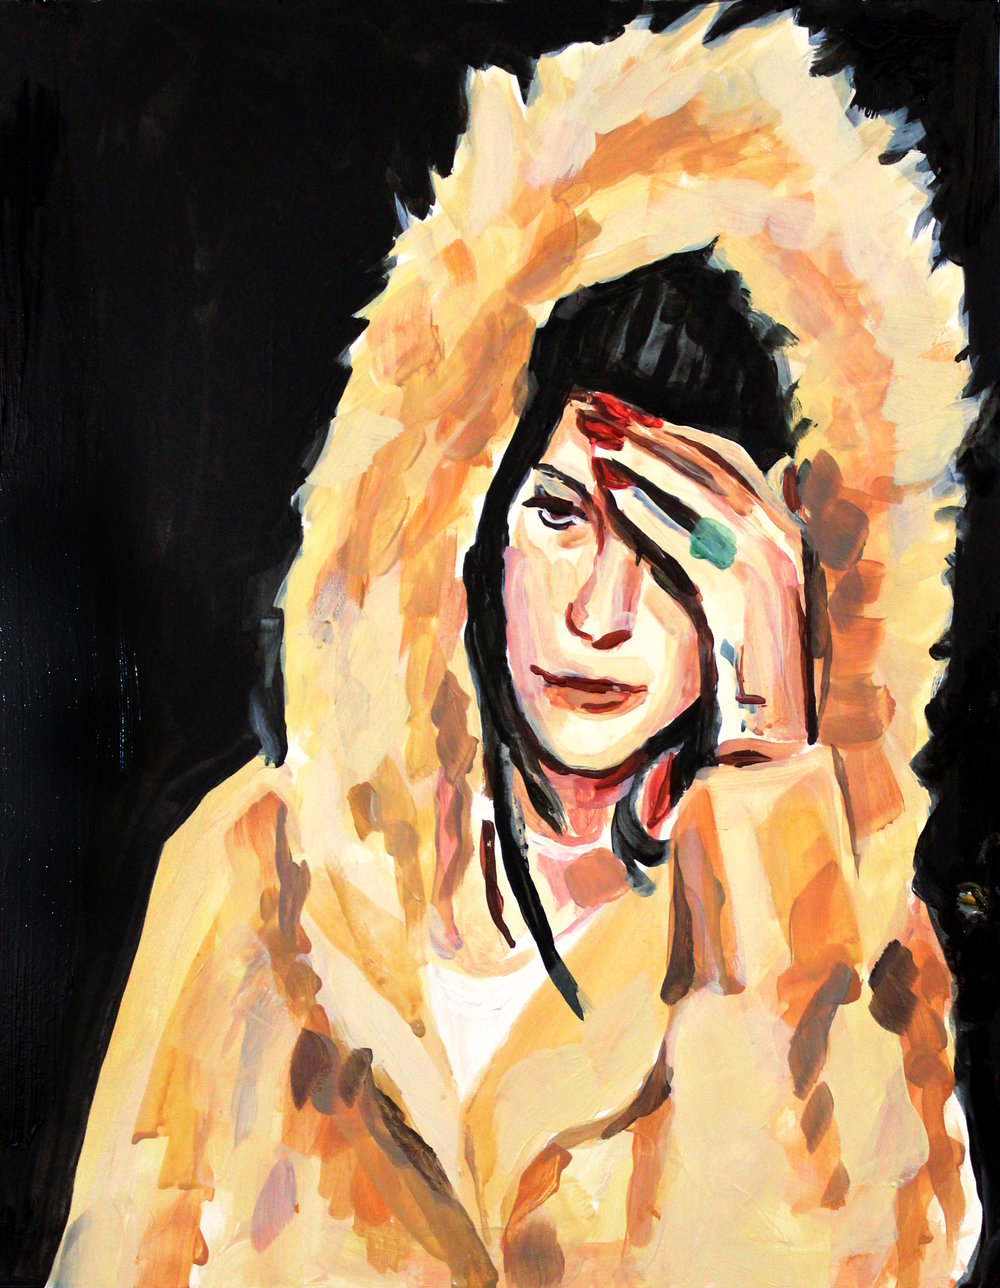 "Lana Del Rey in a Fur Hood    12"" x 16"" acrylic on panel"